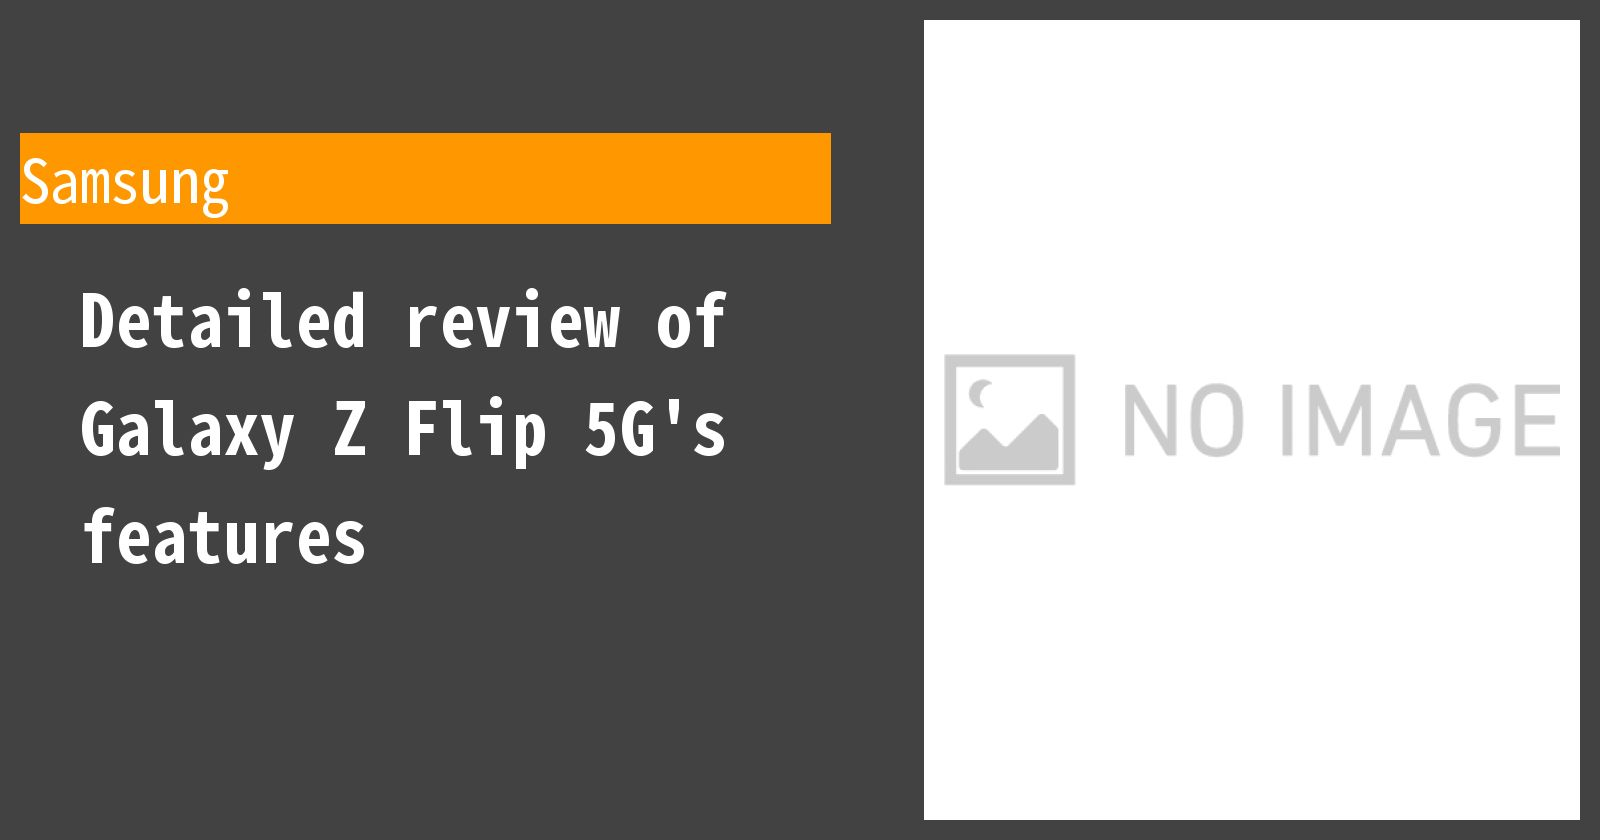 Detailed review of Galaxy Z Flip 5G's features